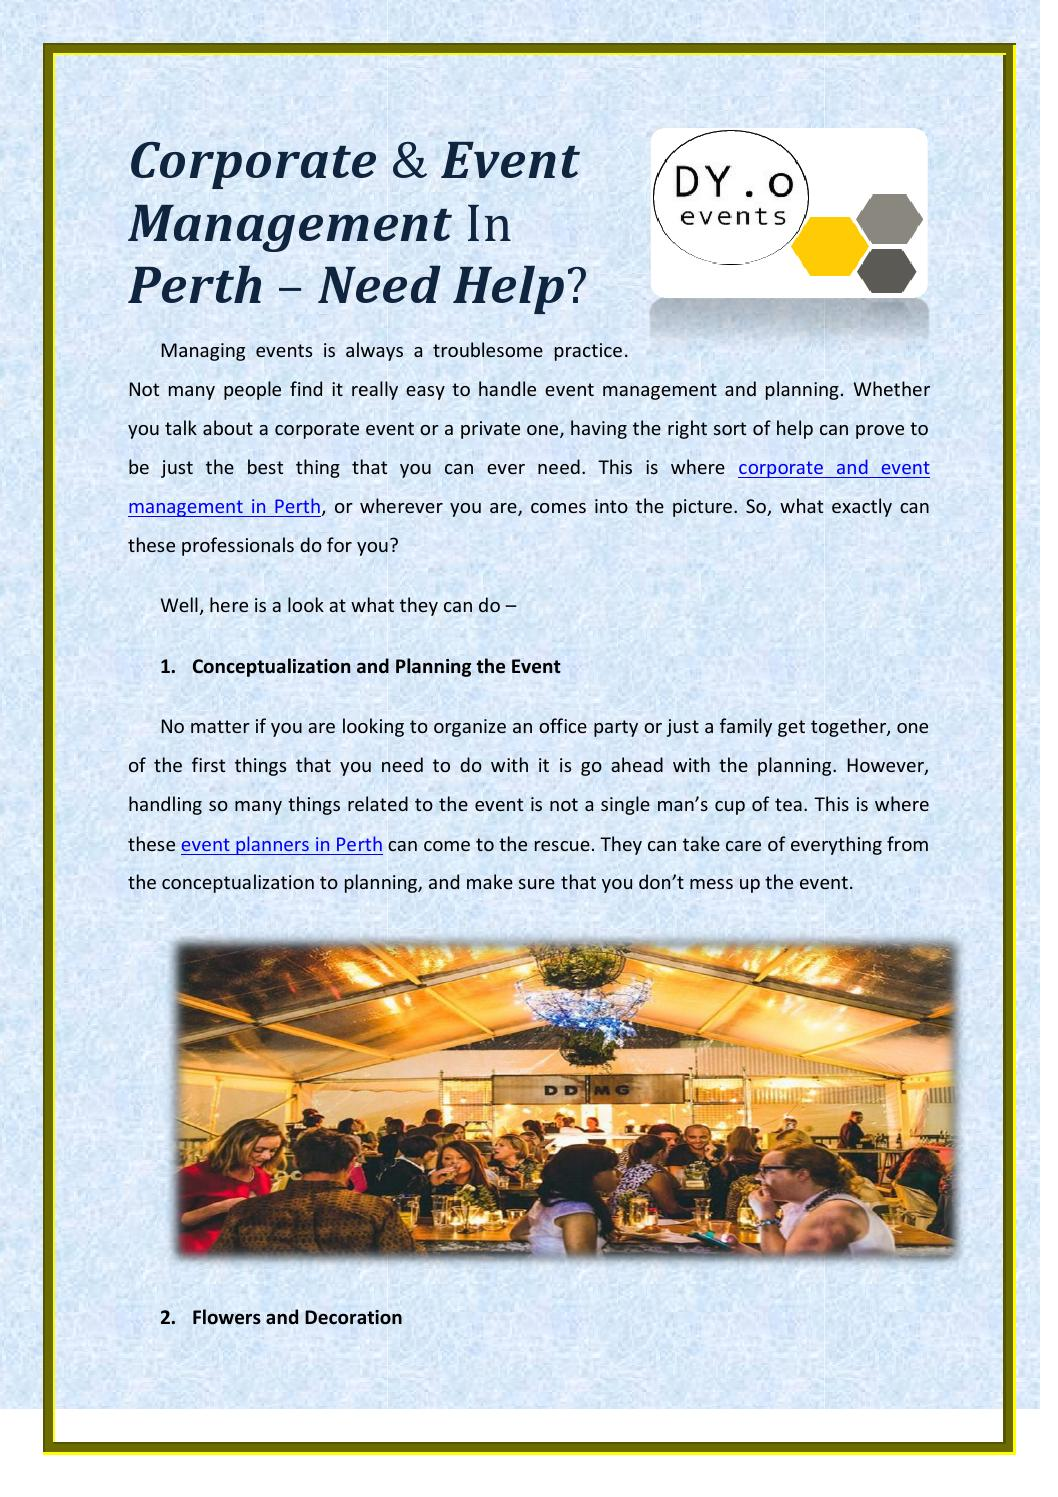 Party Planners Perth Corporate Event Management In Perth Need Help By Dyoevents0